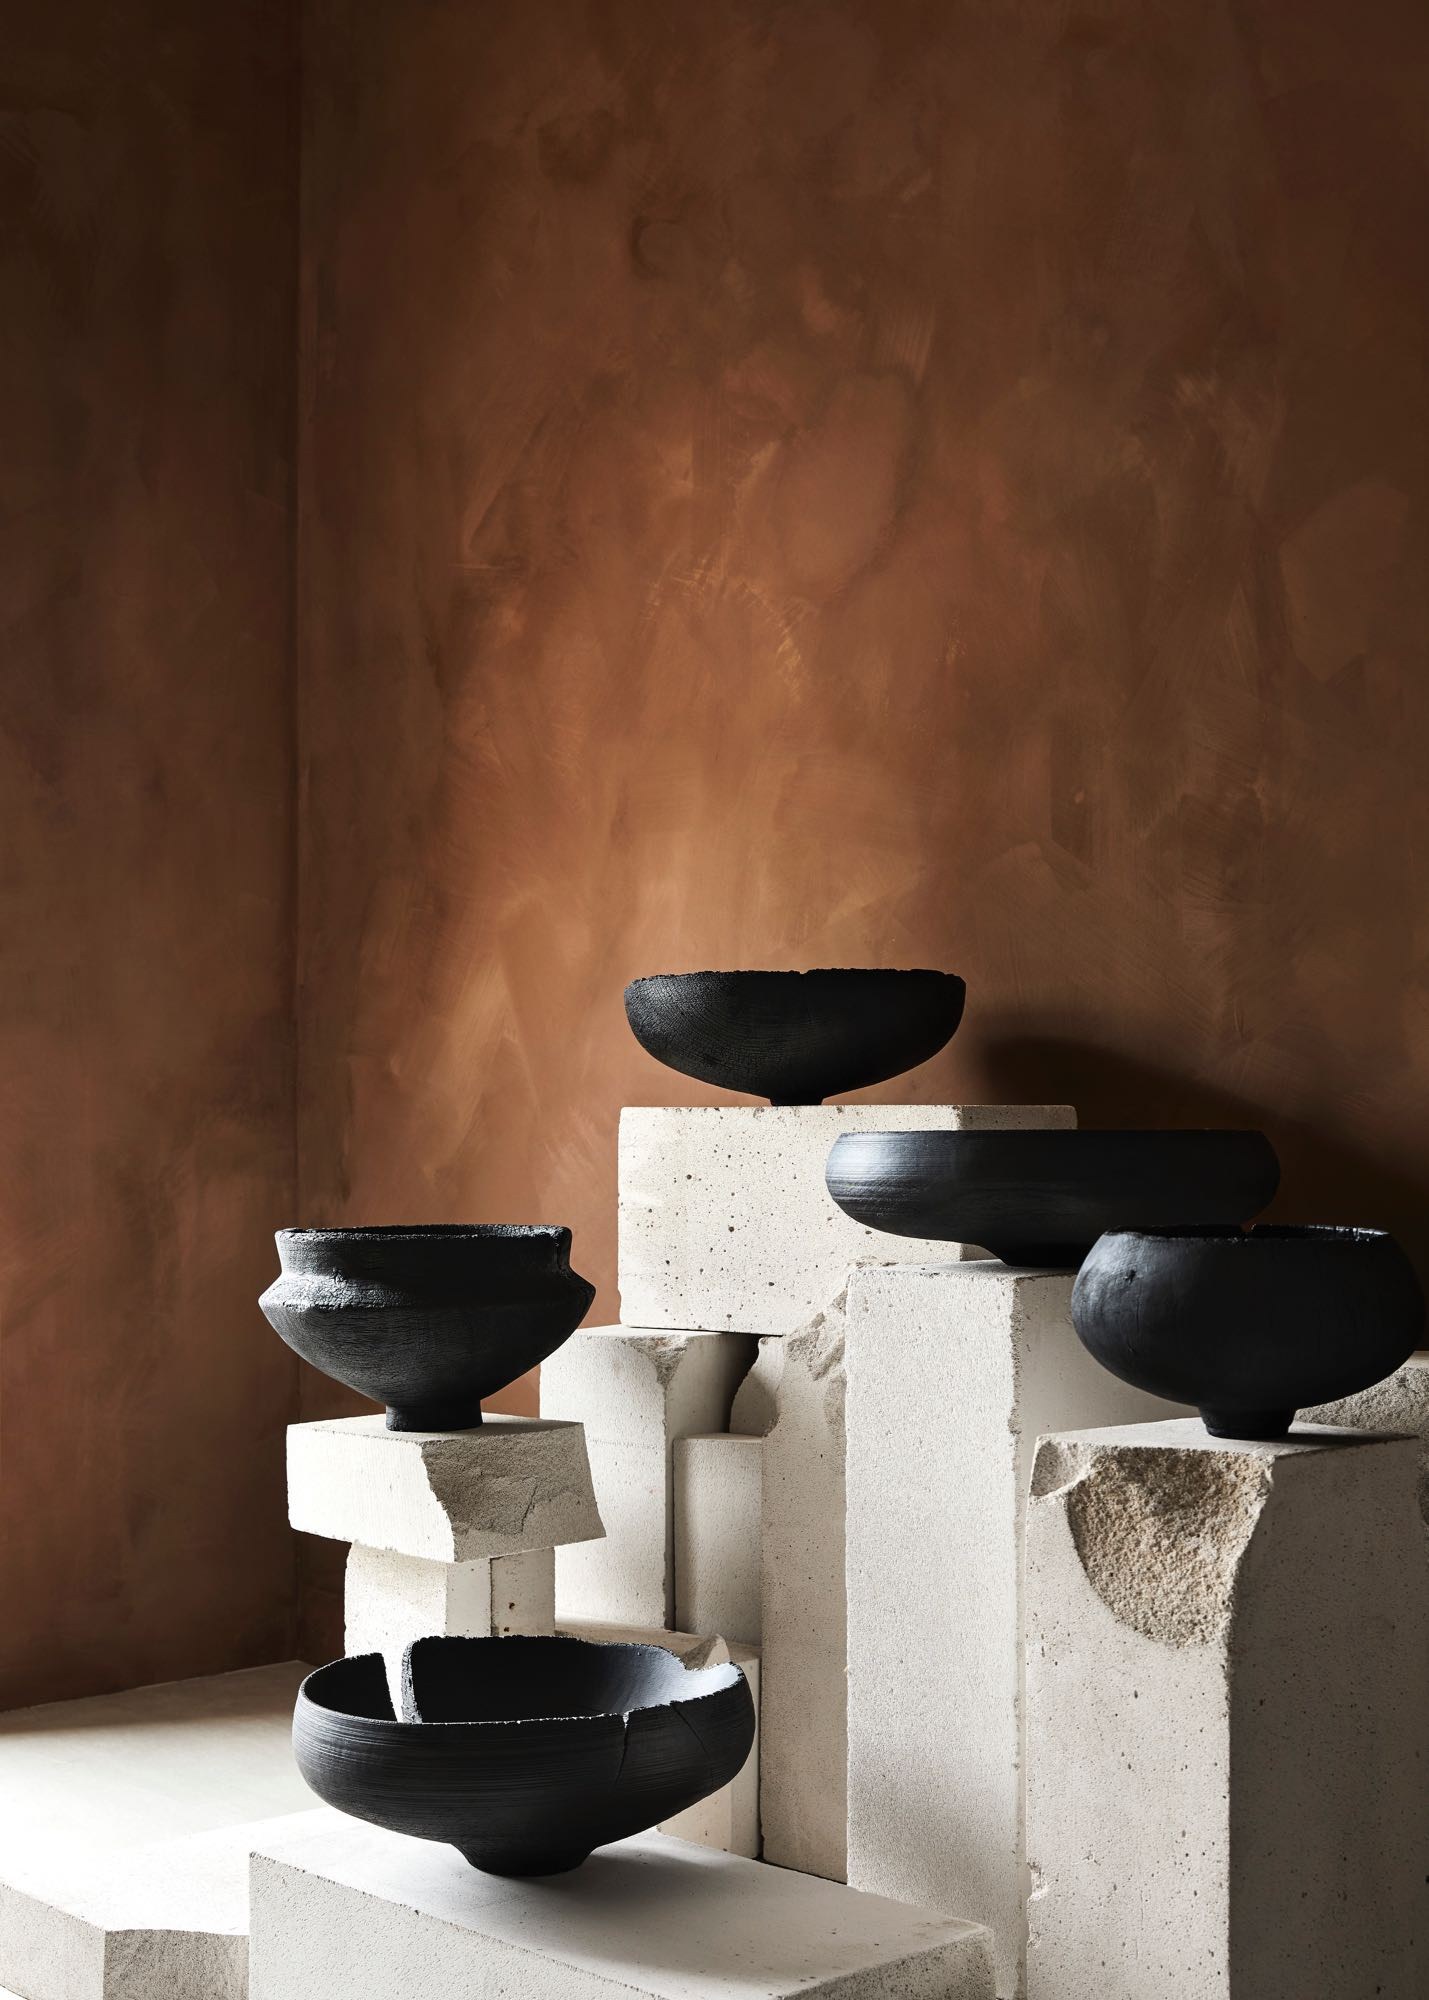 The beautiful work of Makiko Ryujin balancing on delightfully distressed plinths.